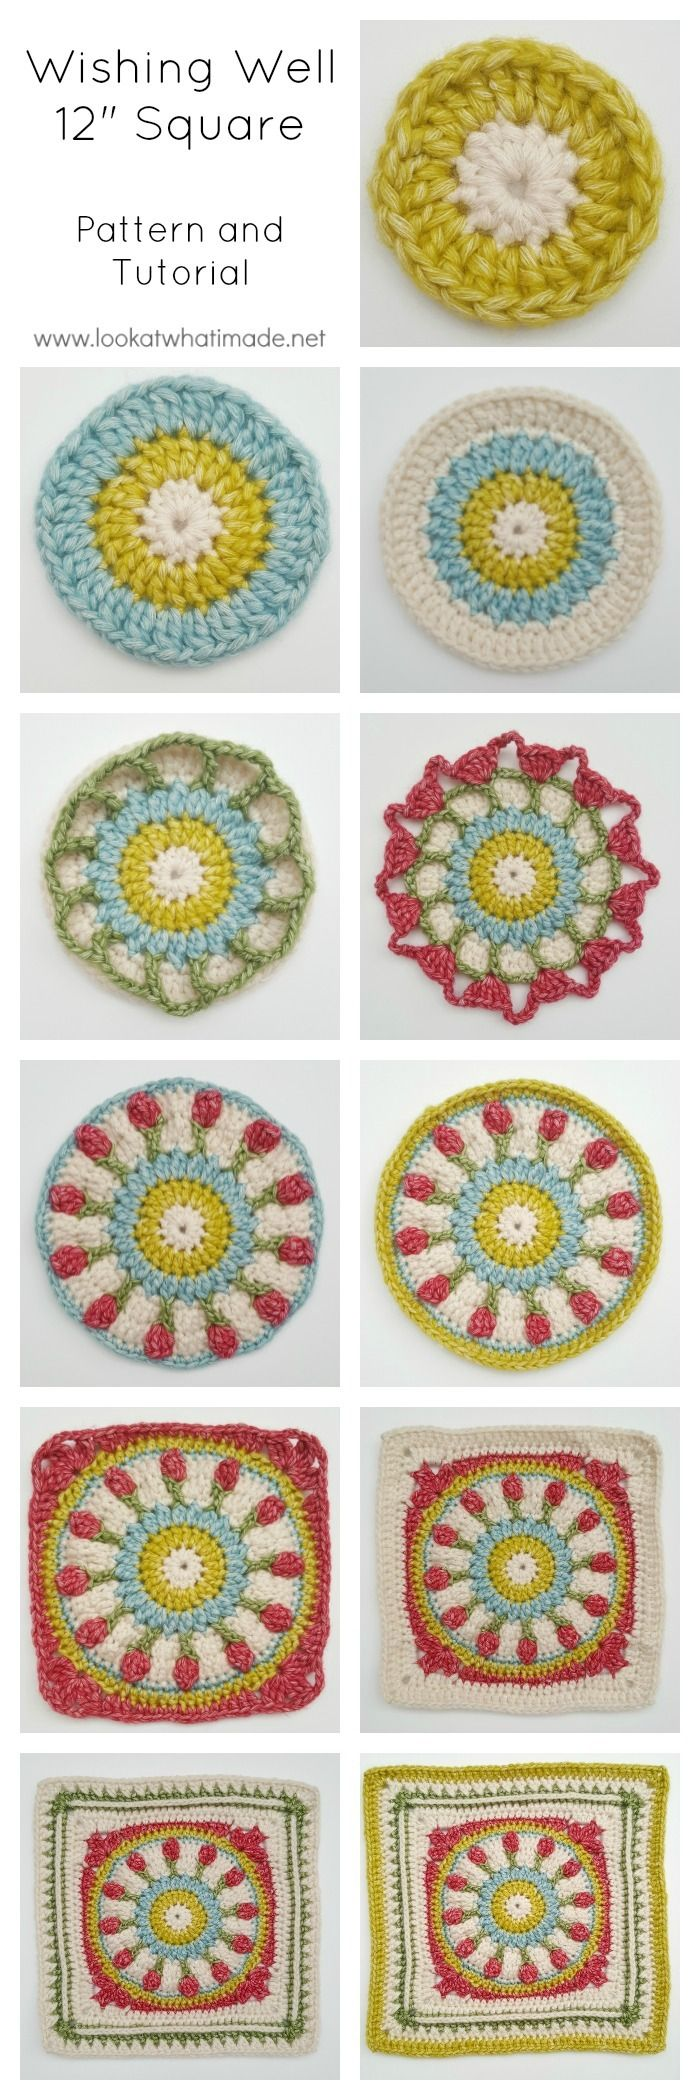 Wishing Well 12″ Crochet Square %7BBlock 14 of the Moogly CAL 2016%7D